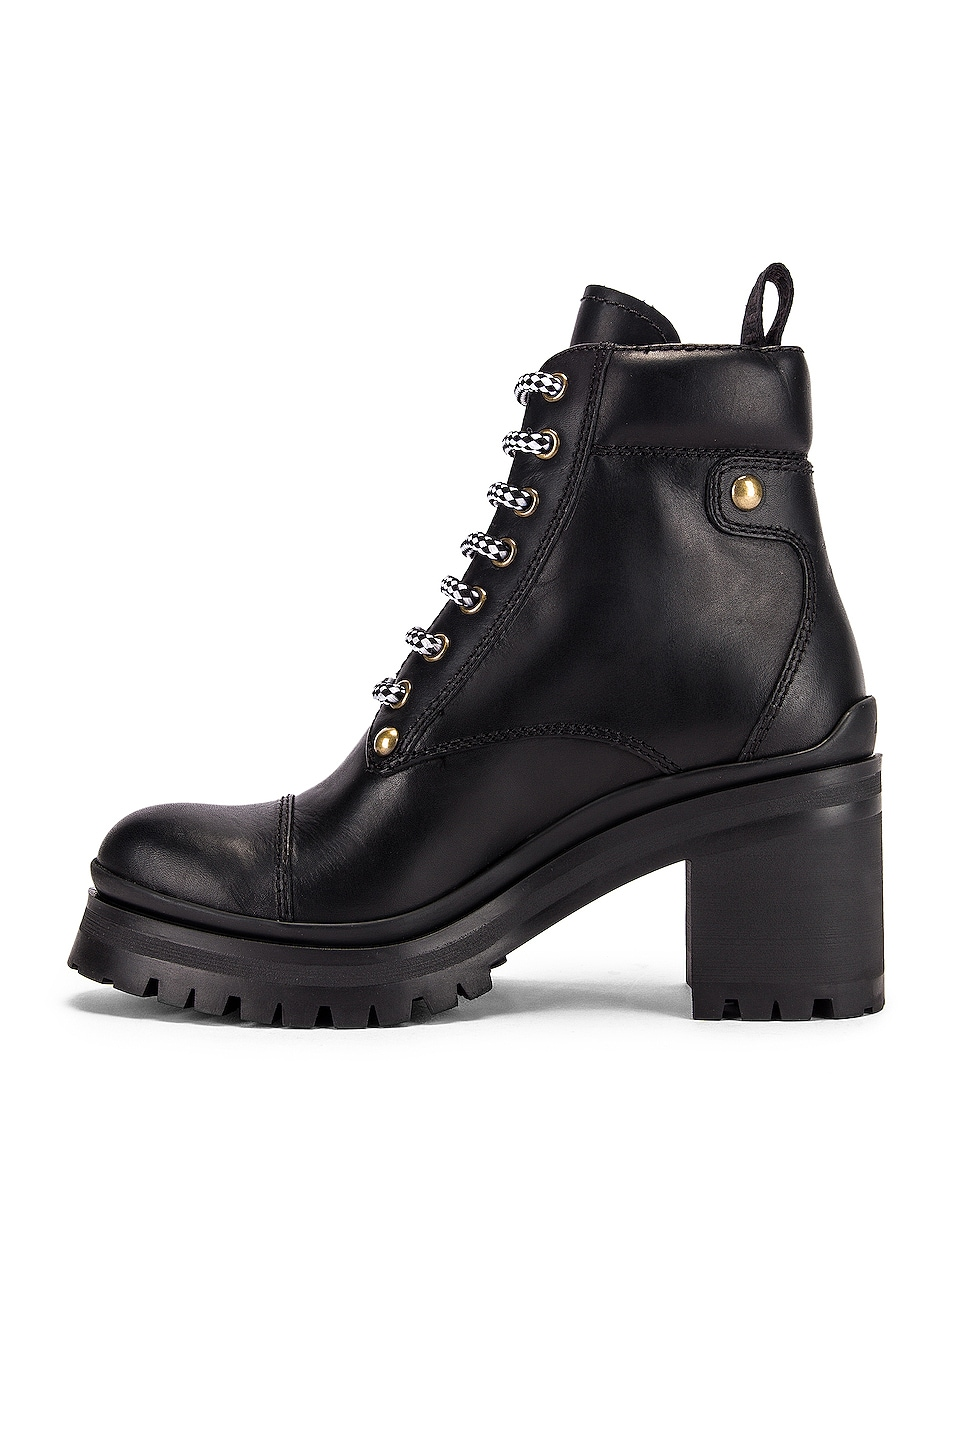 Image 5 of Miu Miu Lace Up Leather Ankle Boots in Black